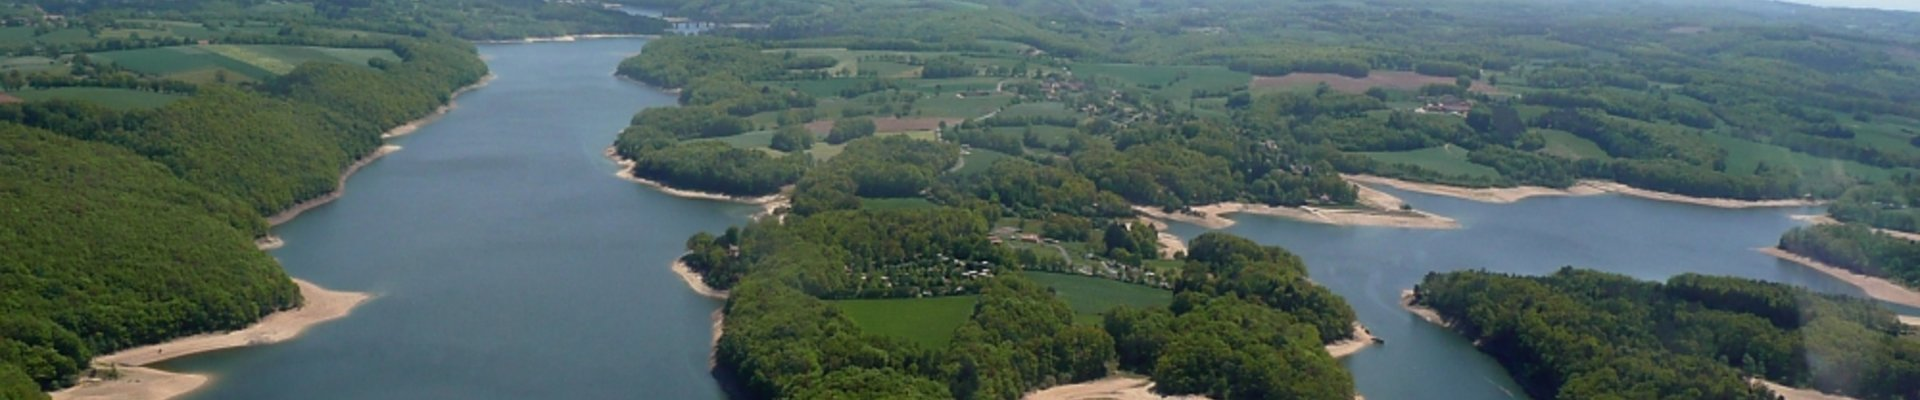 Camping Cantal *** Les Rives du Lac SAINT ETIENNE CANTALES, location de mobile-homes, emplacement camping